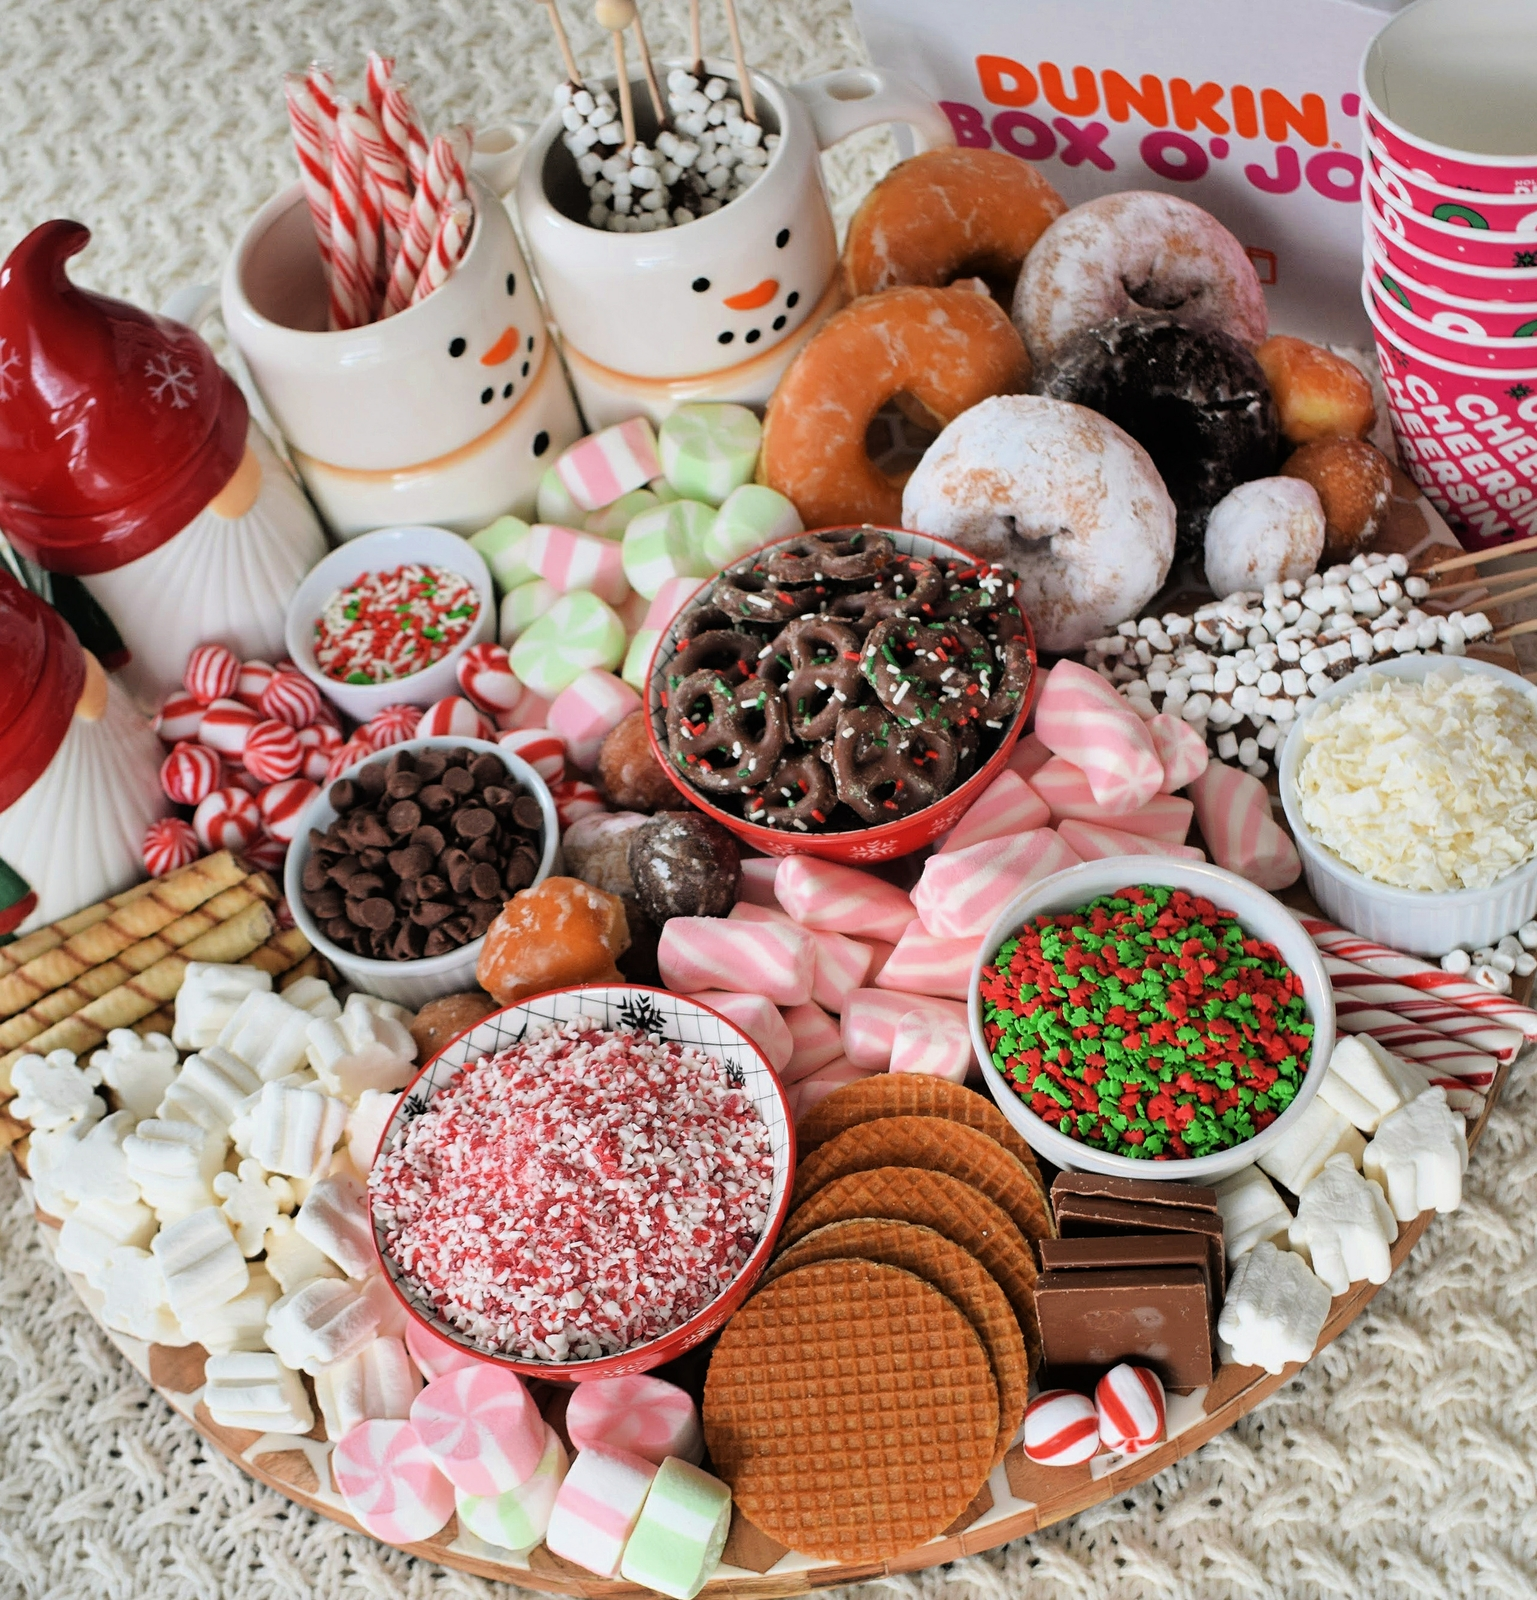 How to Build the Ultimate Dunkin' Hot Chocolate Board